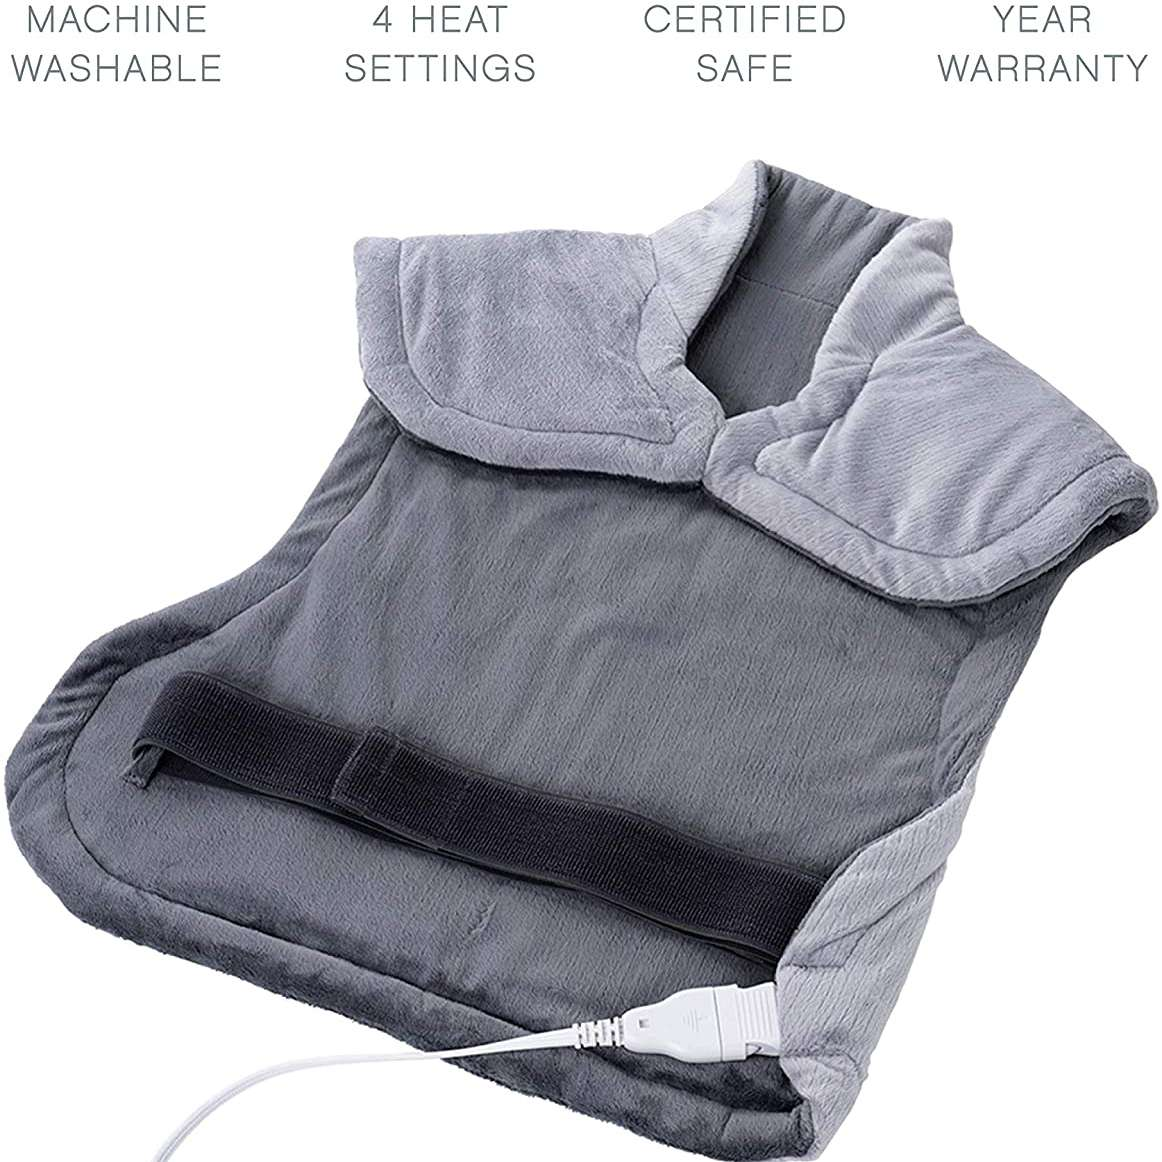 the 9 best heating pads of 2021